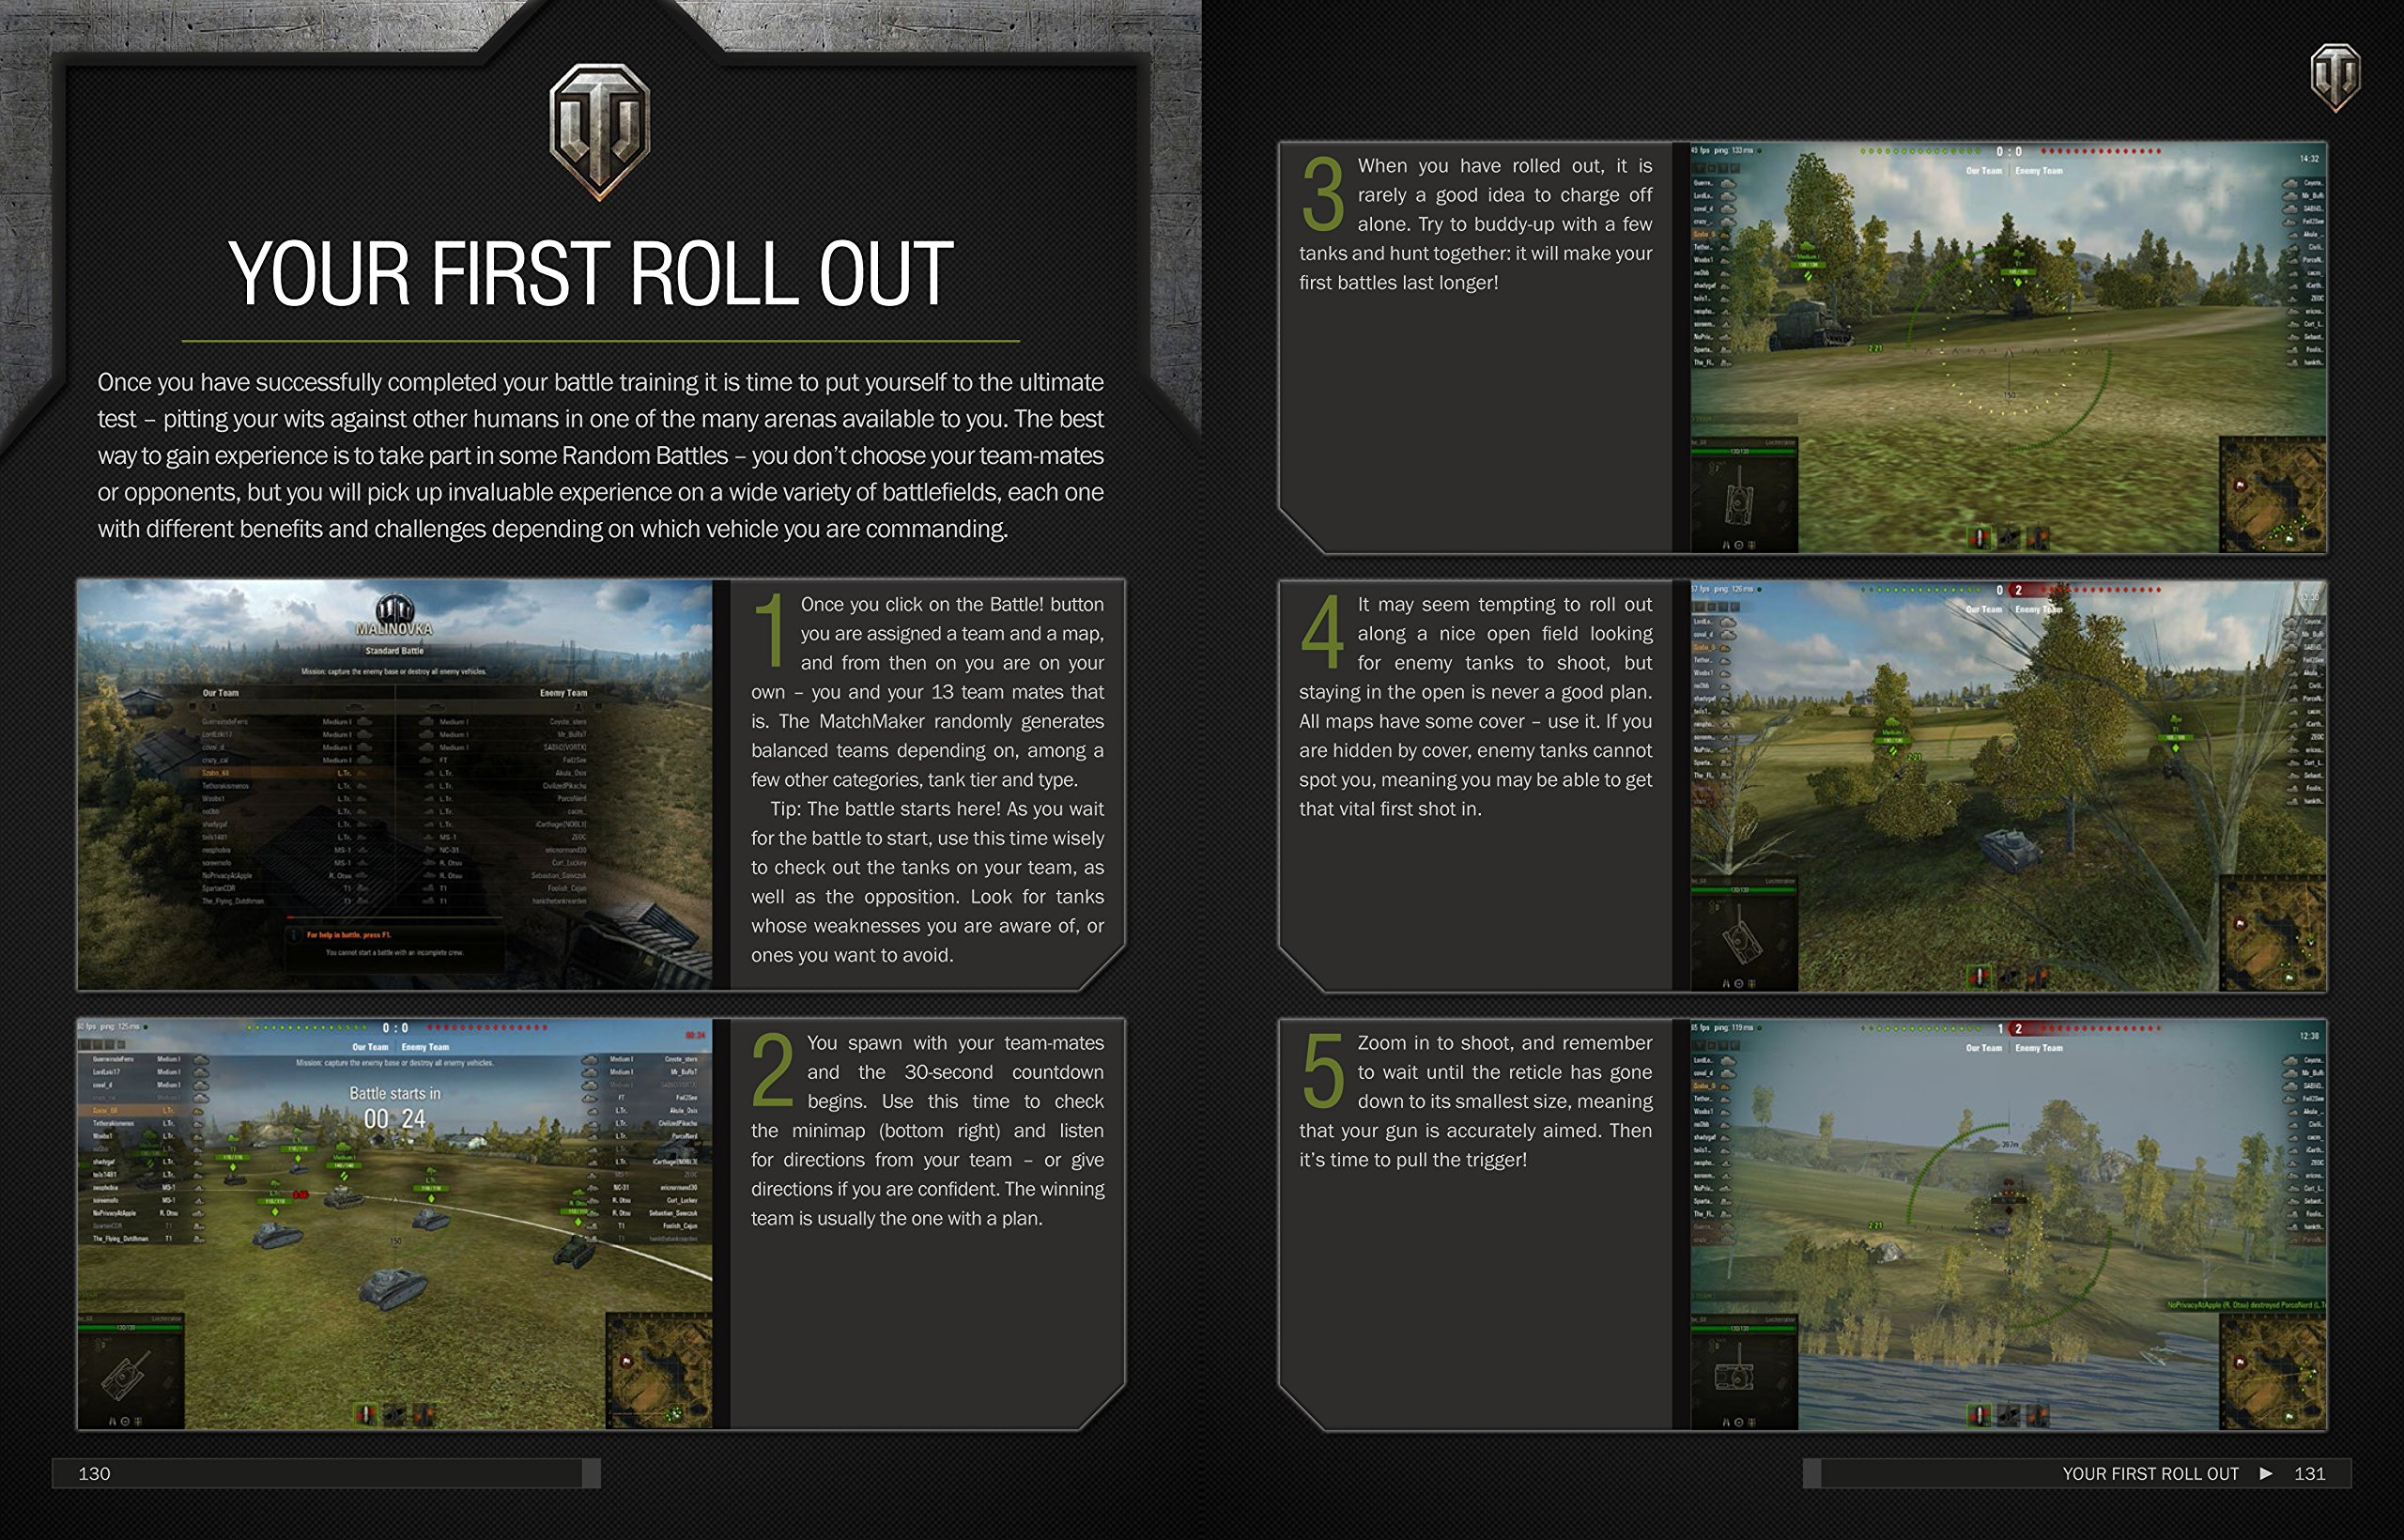 World of tanks commanders guide wargaming amazon world of tanks commanders guide wargaming amazon tom hatfield 9781780974019 books sciox Image collections